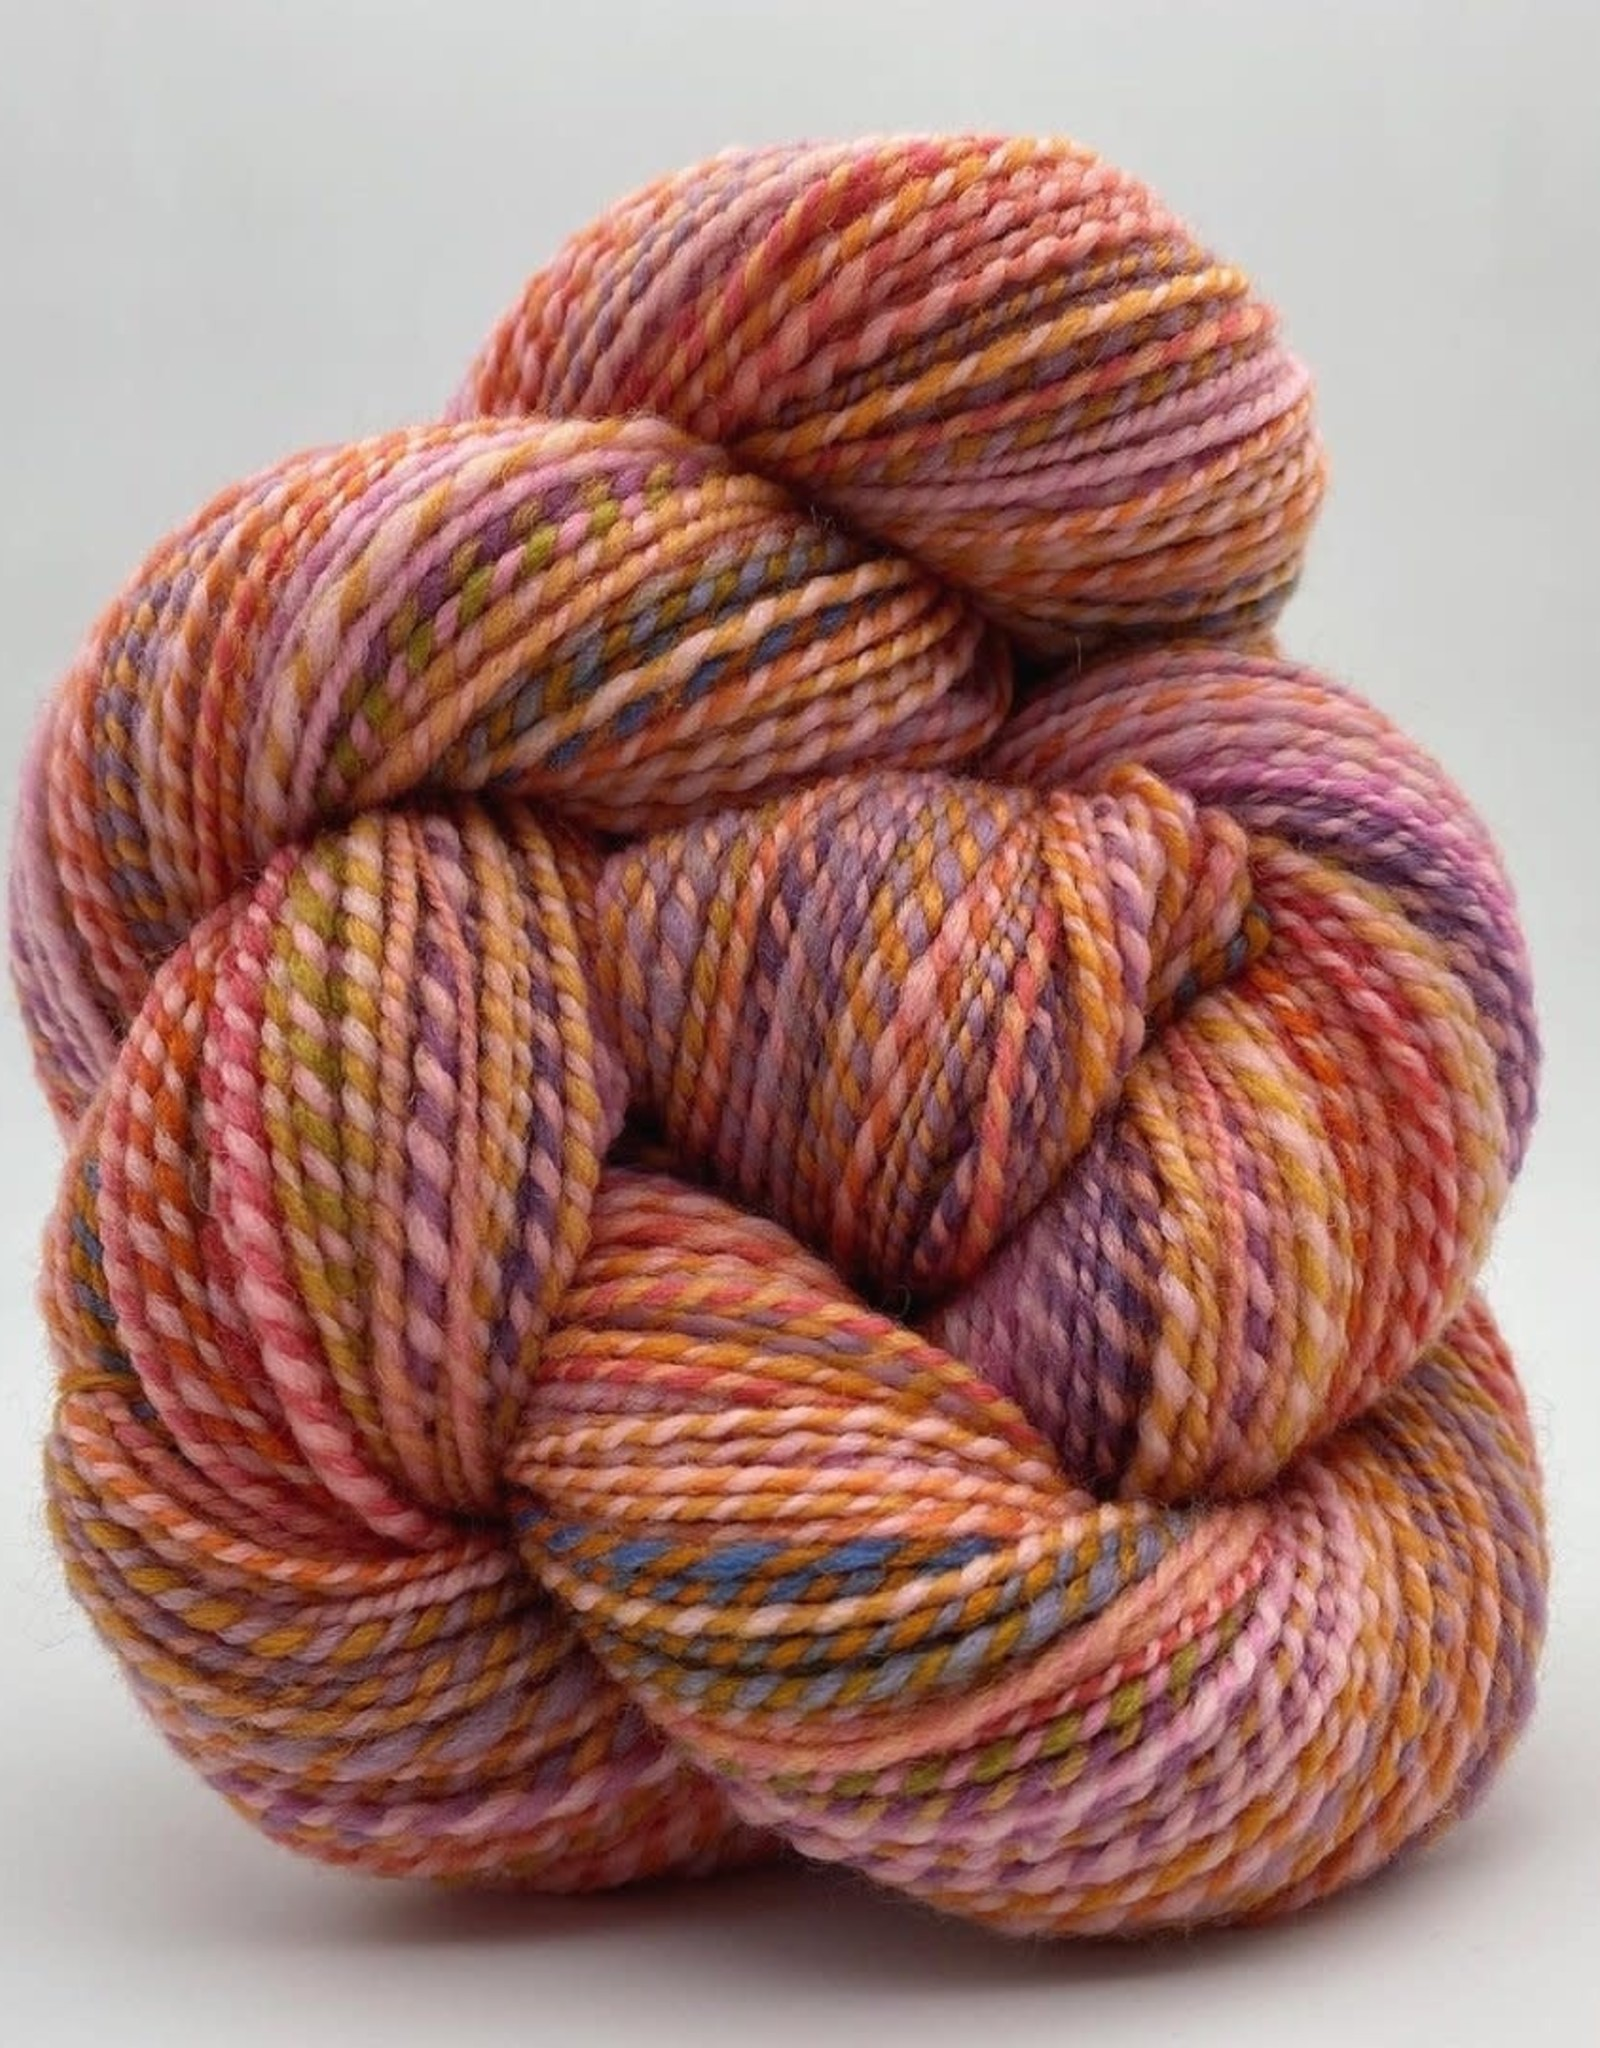 Spincycle Yarns Dyed in the Wool Midsommer